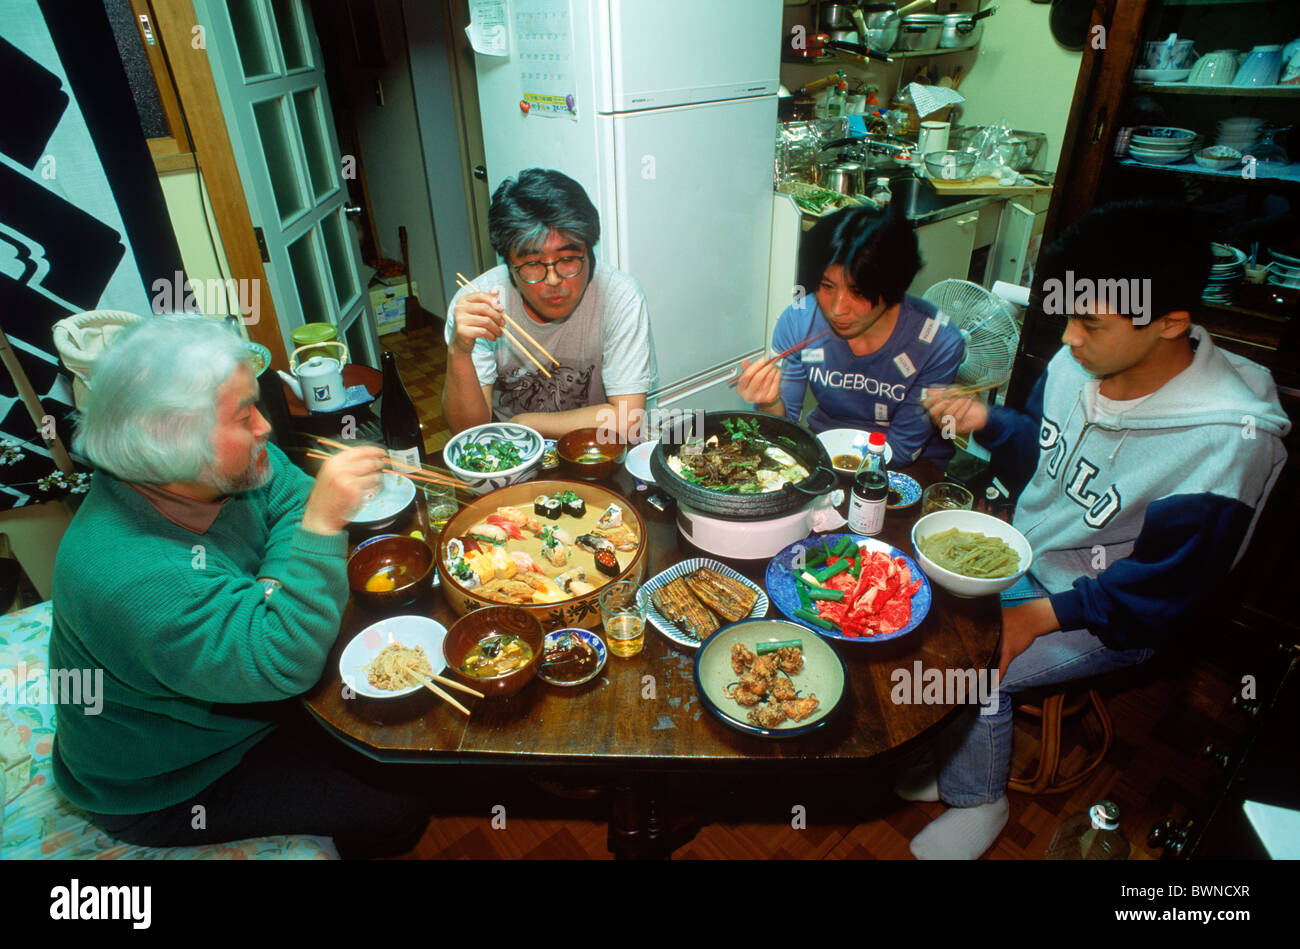 Japanese Family Eating Meal Together At Kitchen Table In